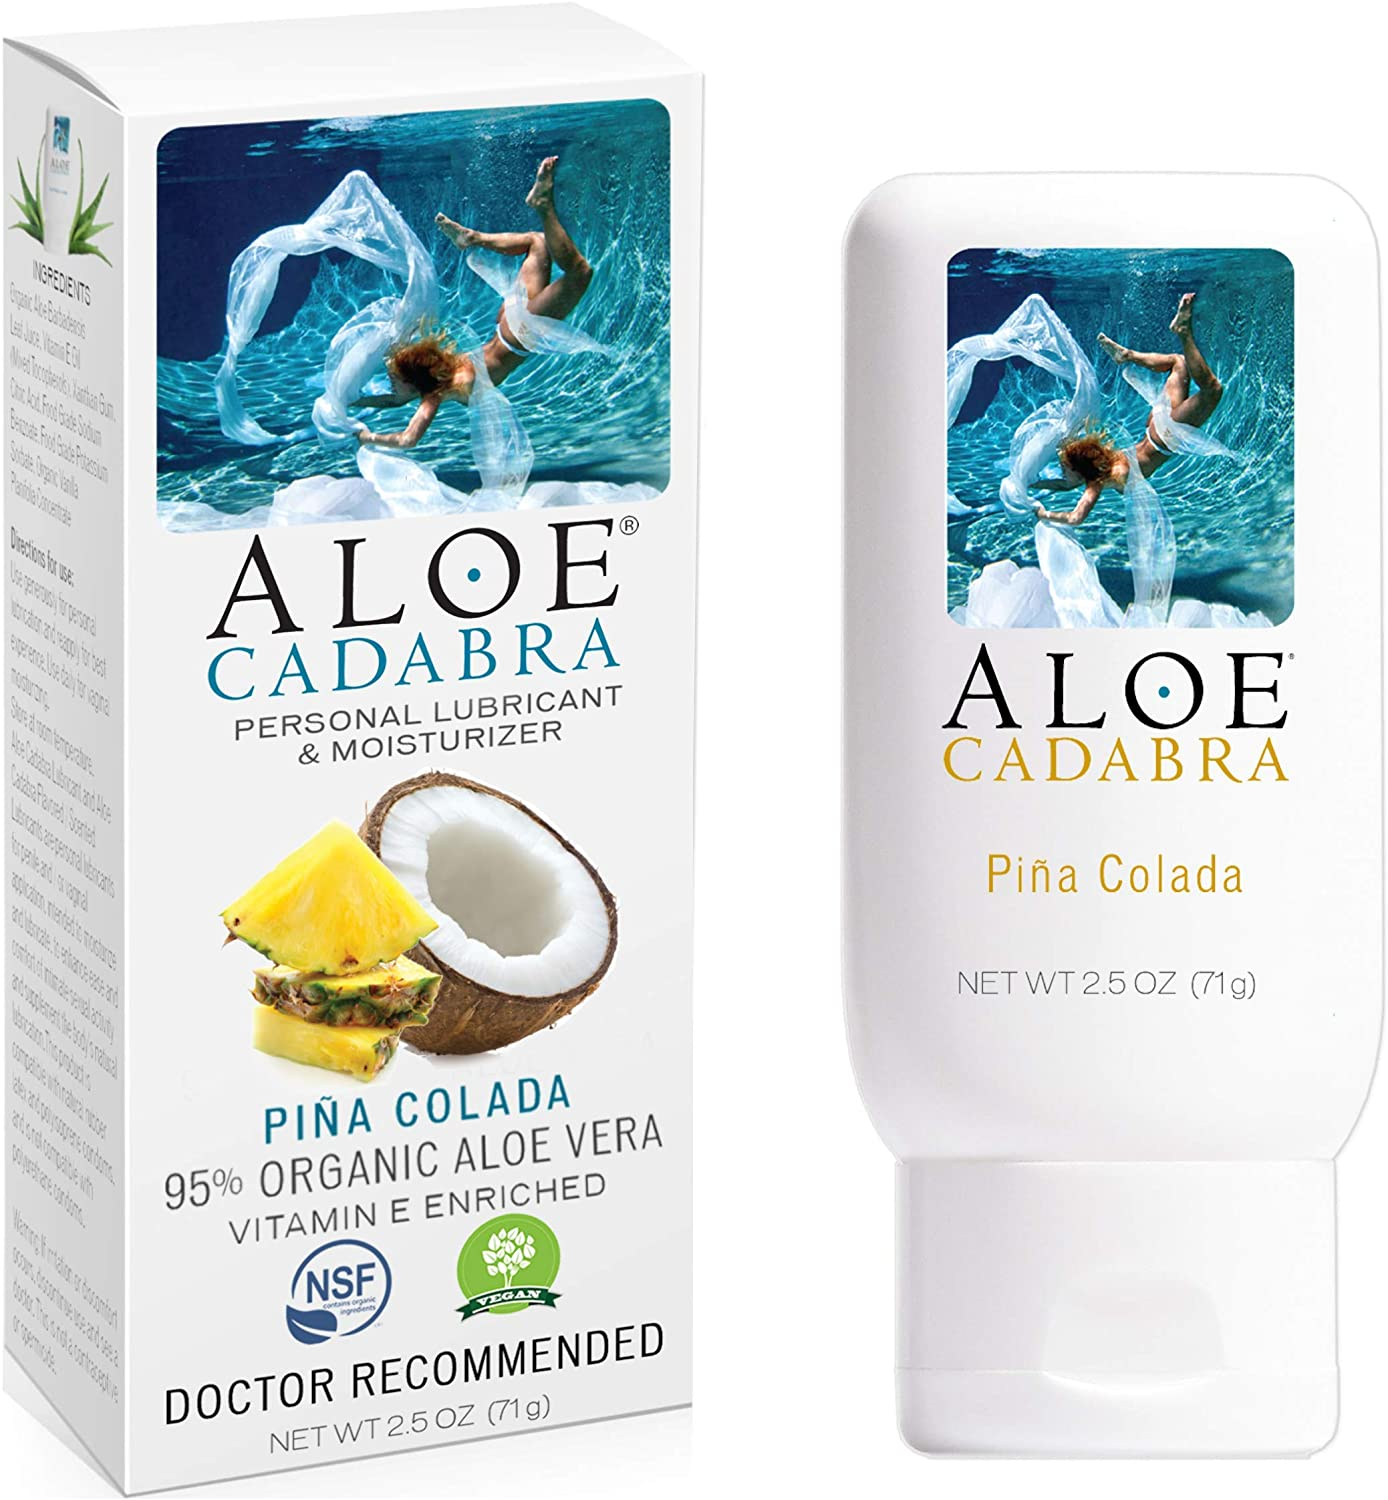 Aloe Cadabra Flavored Personal Lube for Oral Sex